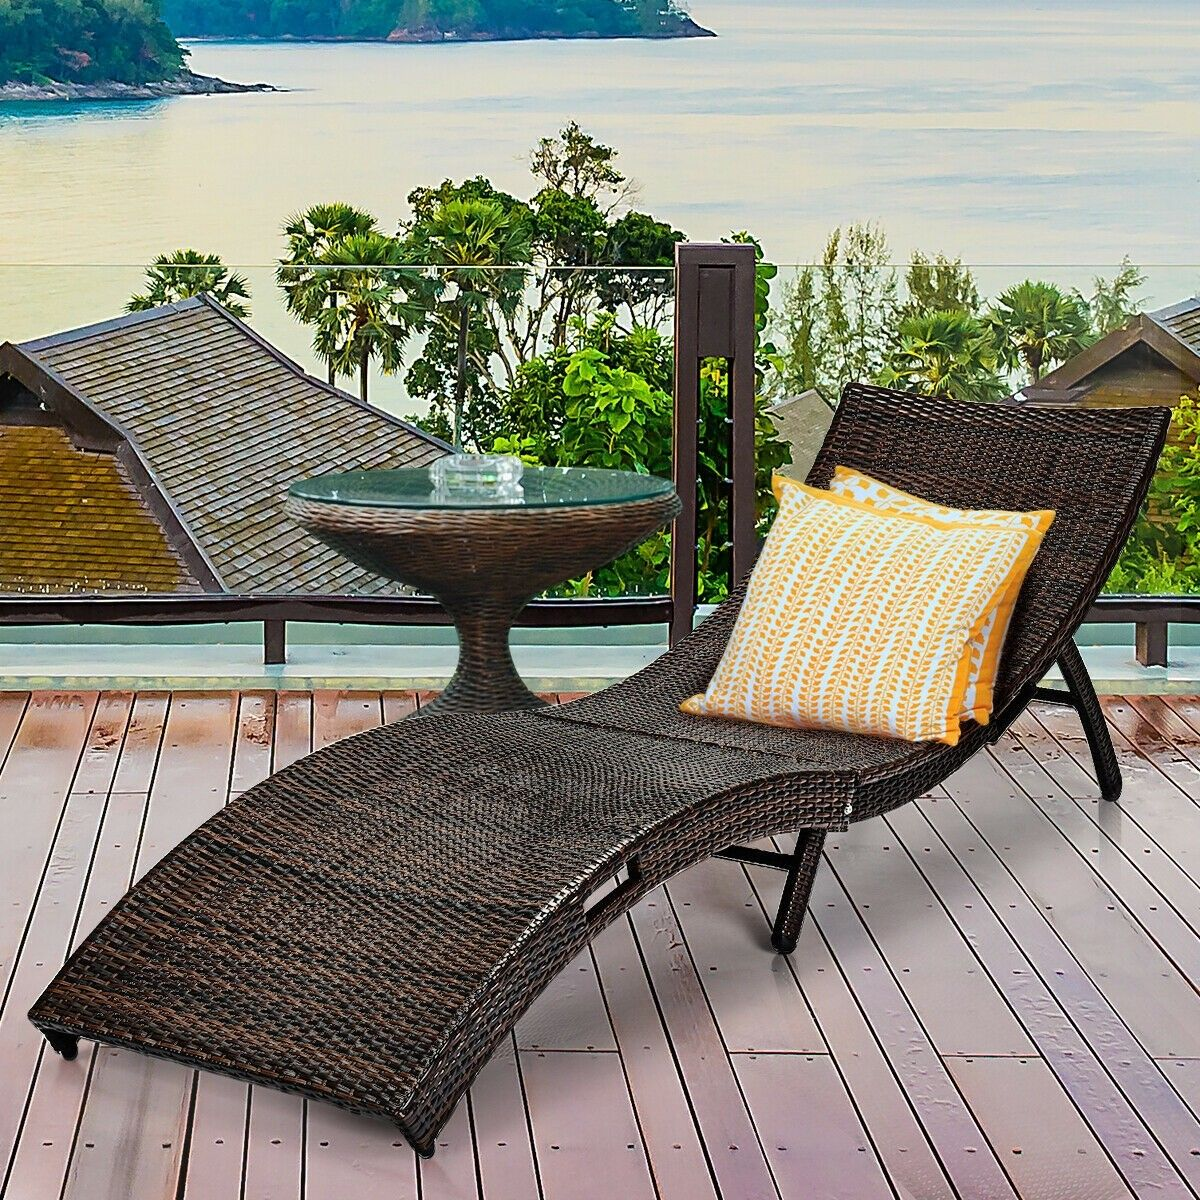 Outdoor Couch Bed Patio Folding Rattan Lounge Chair